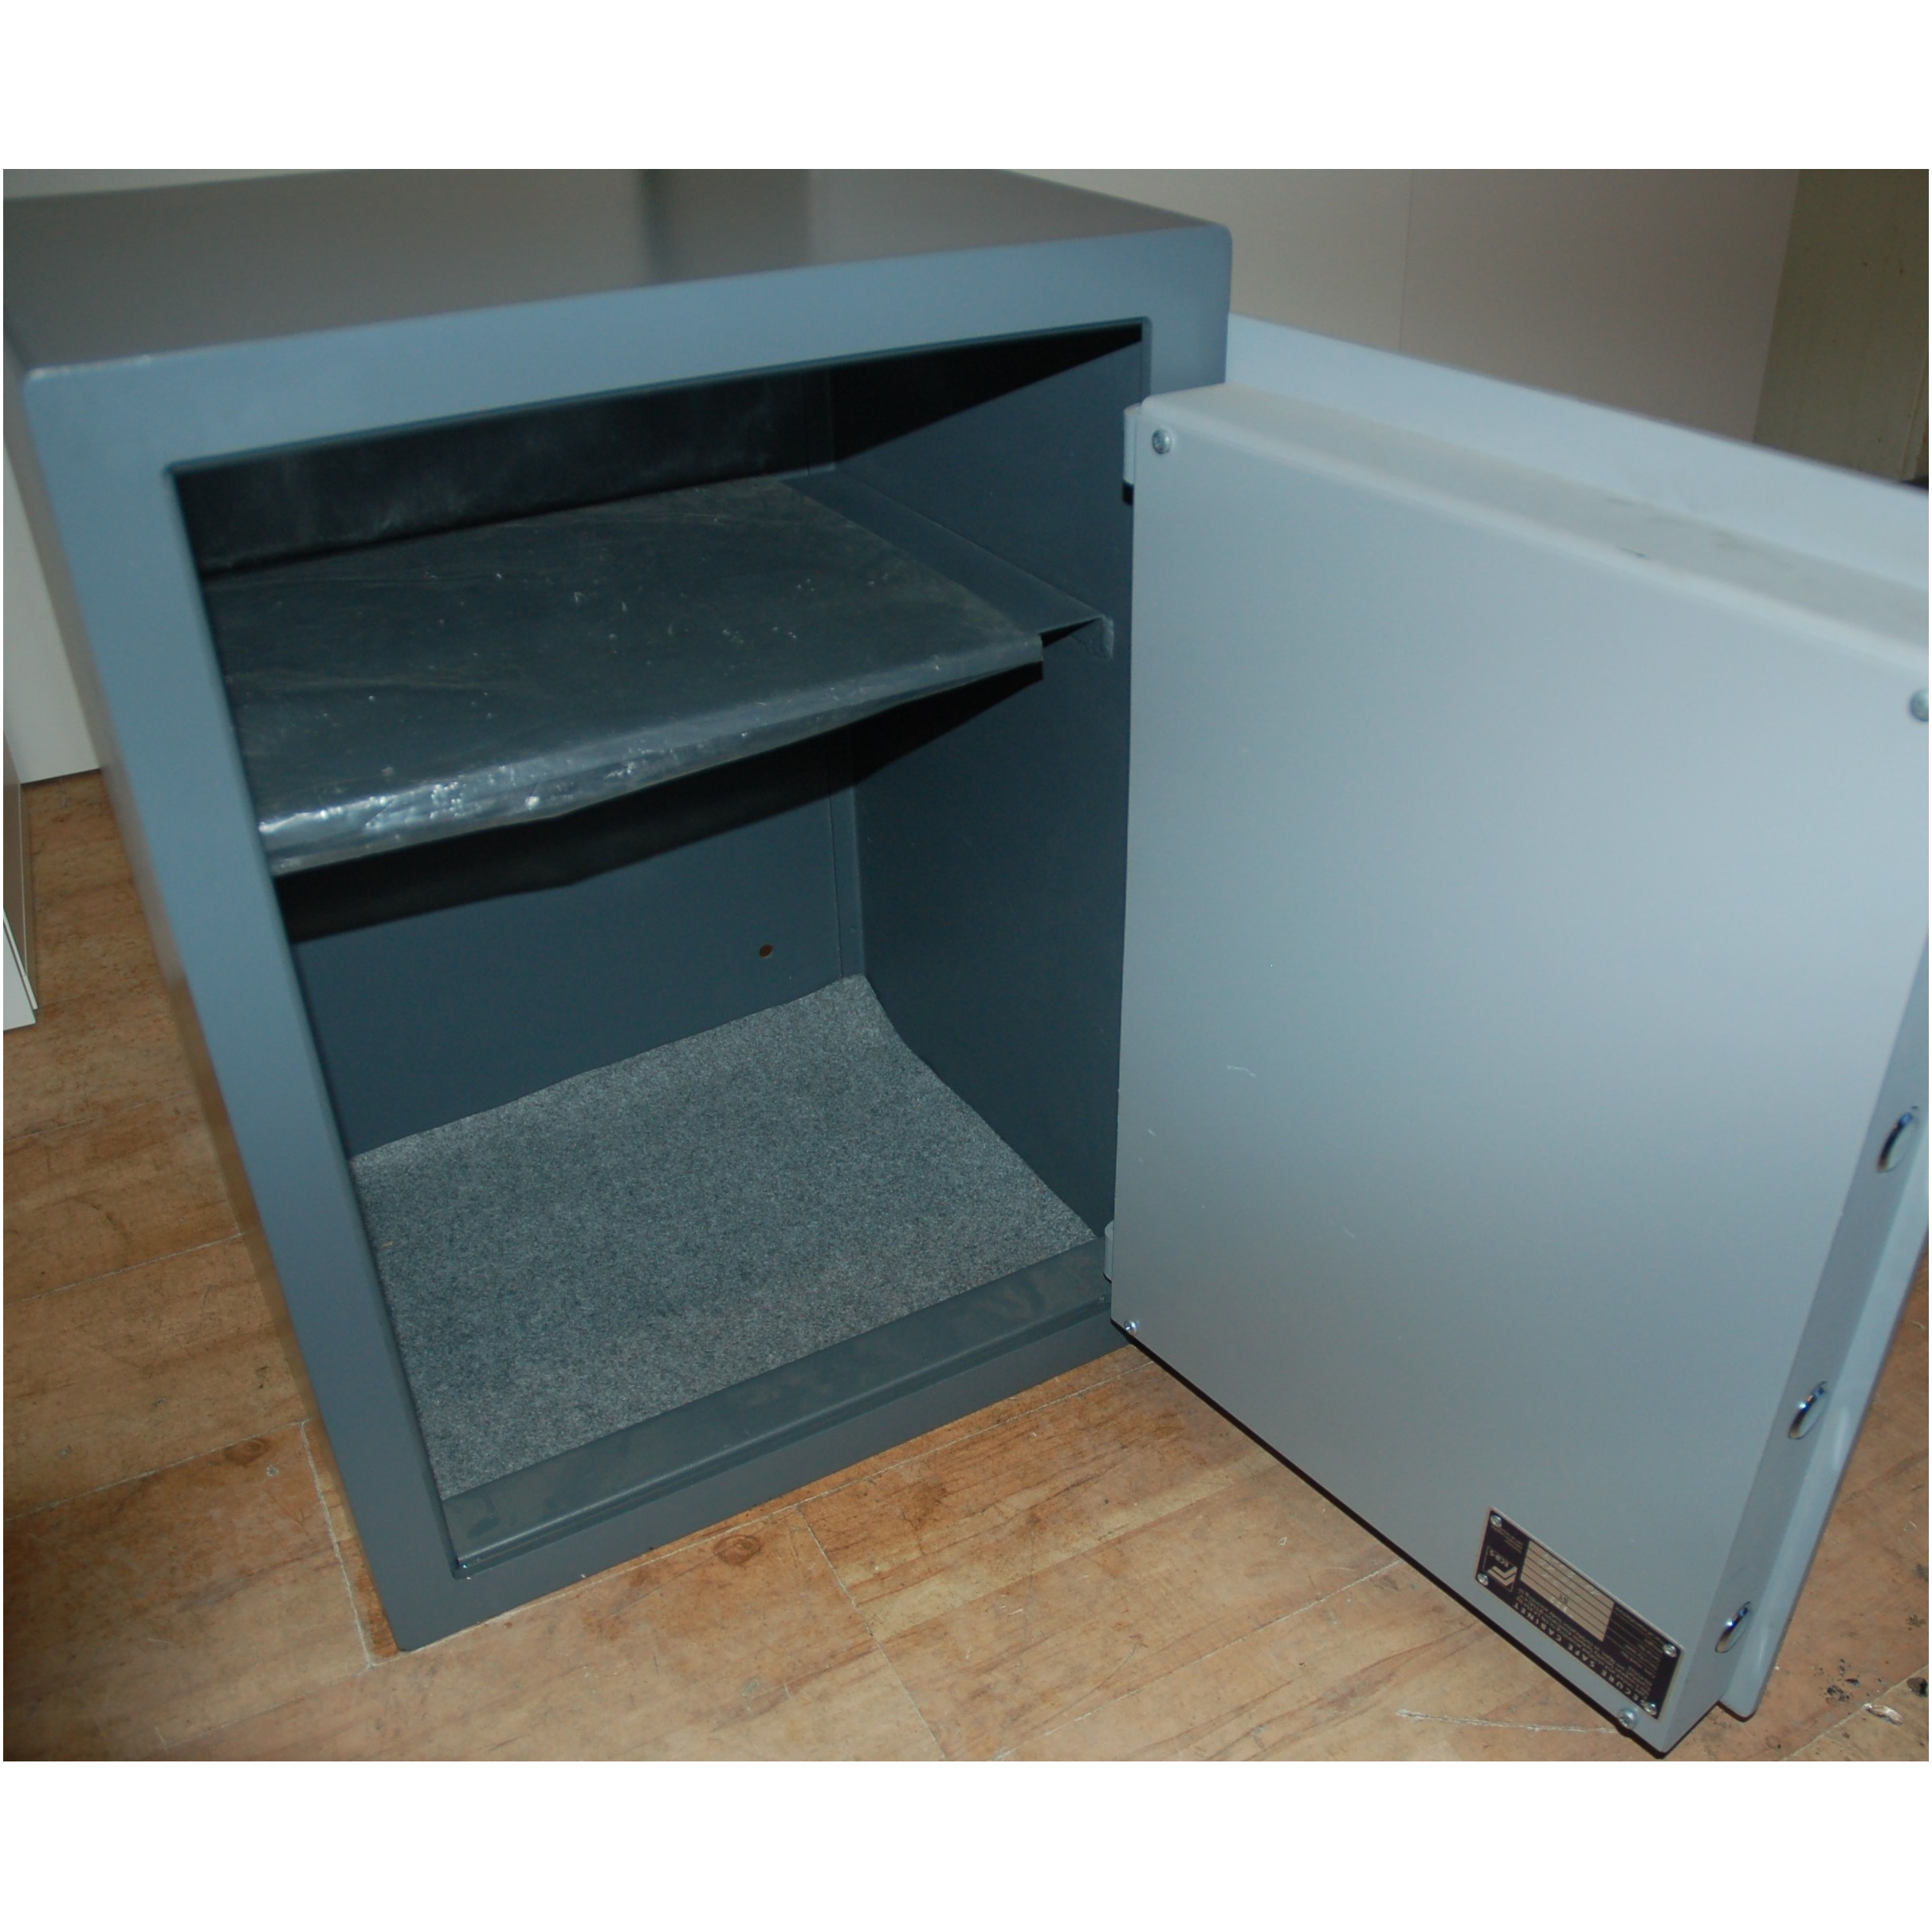 CHUBB SECURELINE S1 Safe 8019